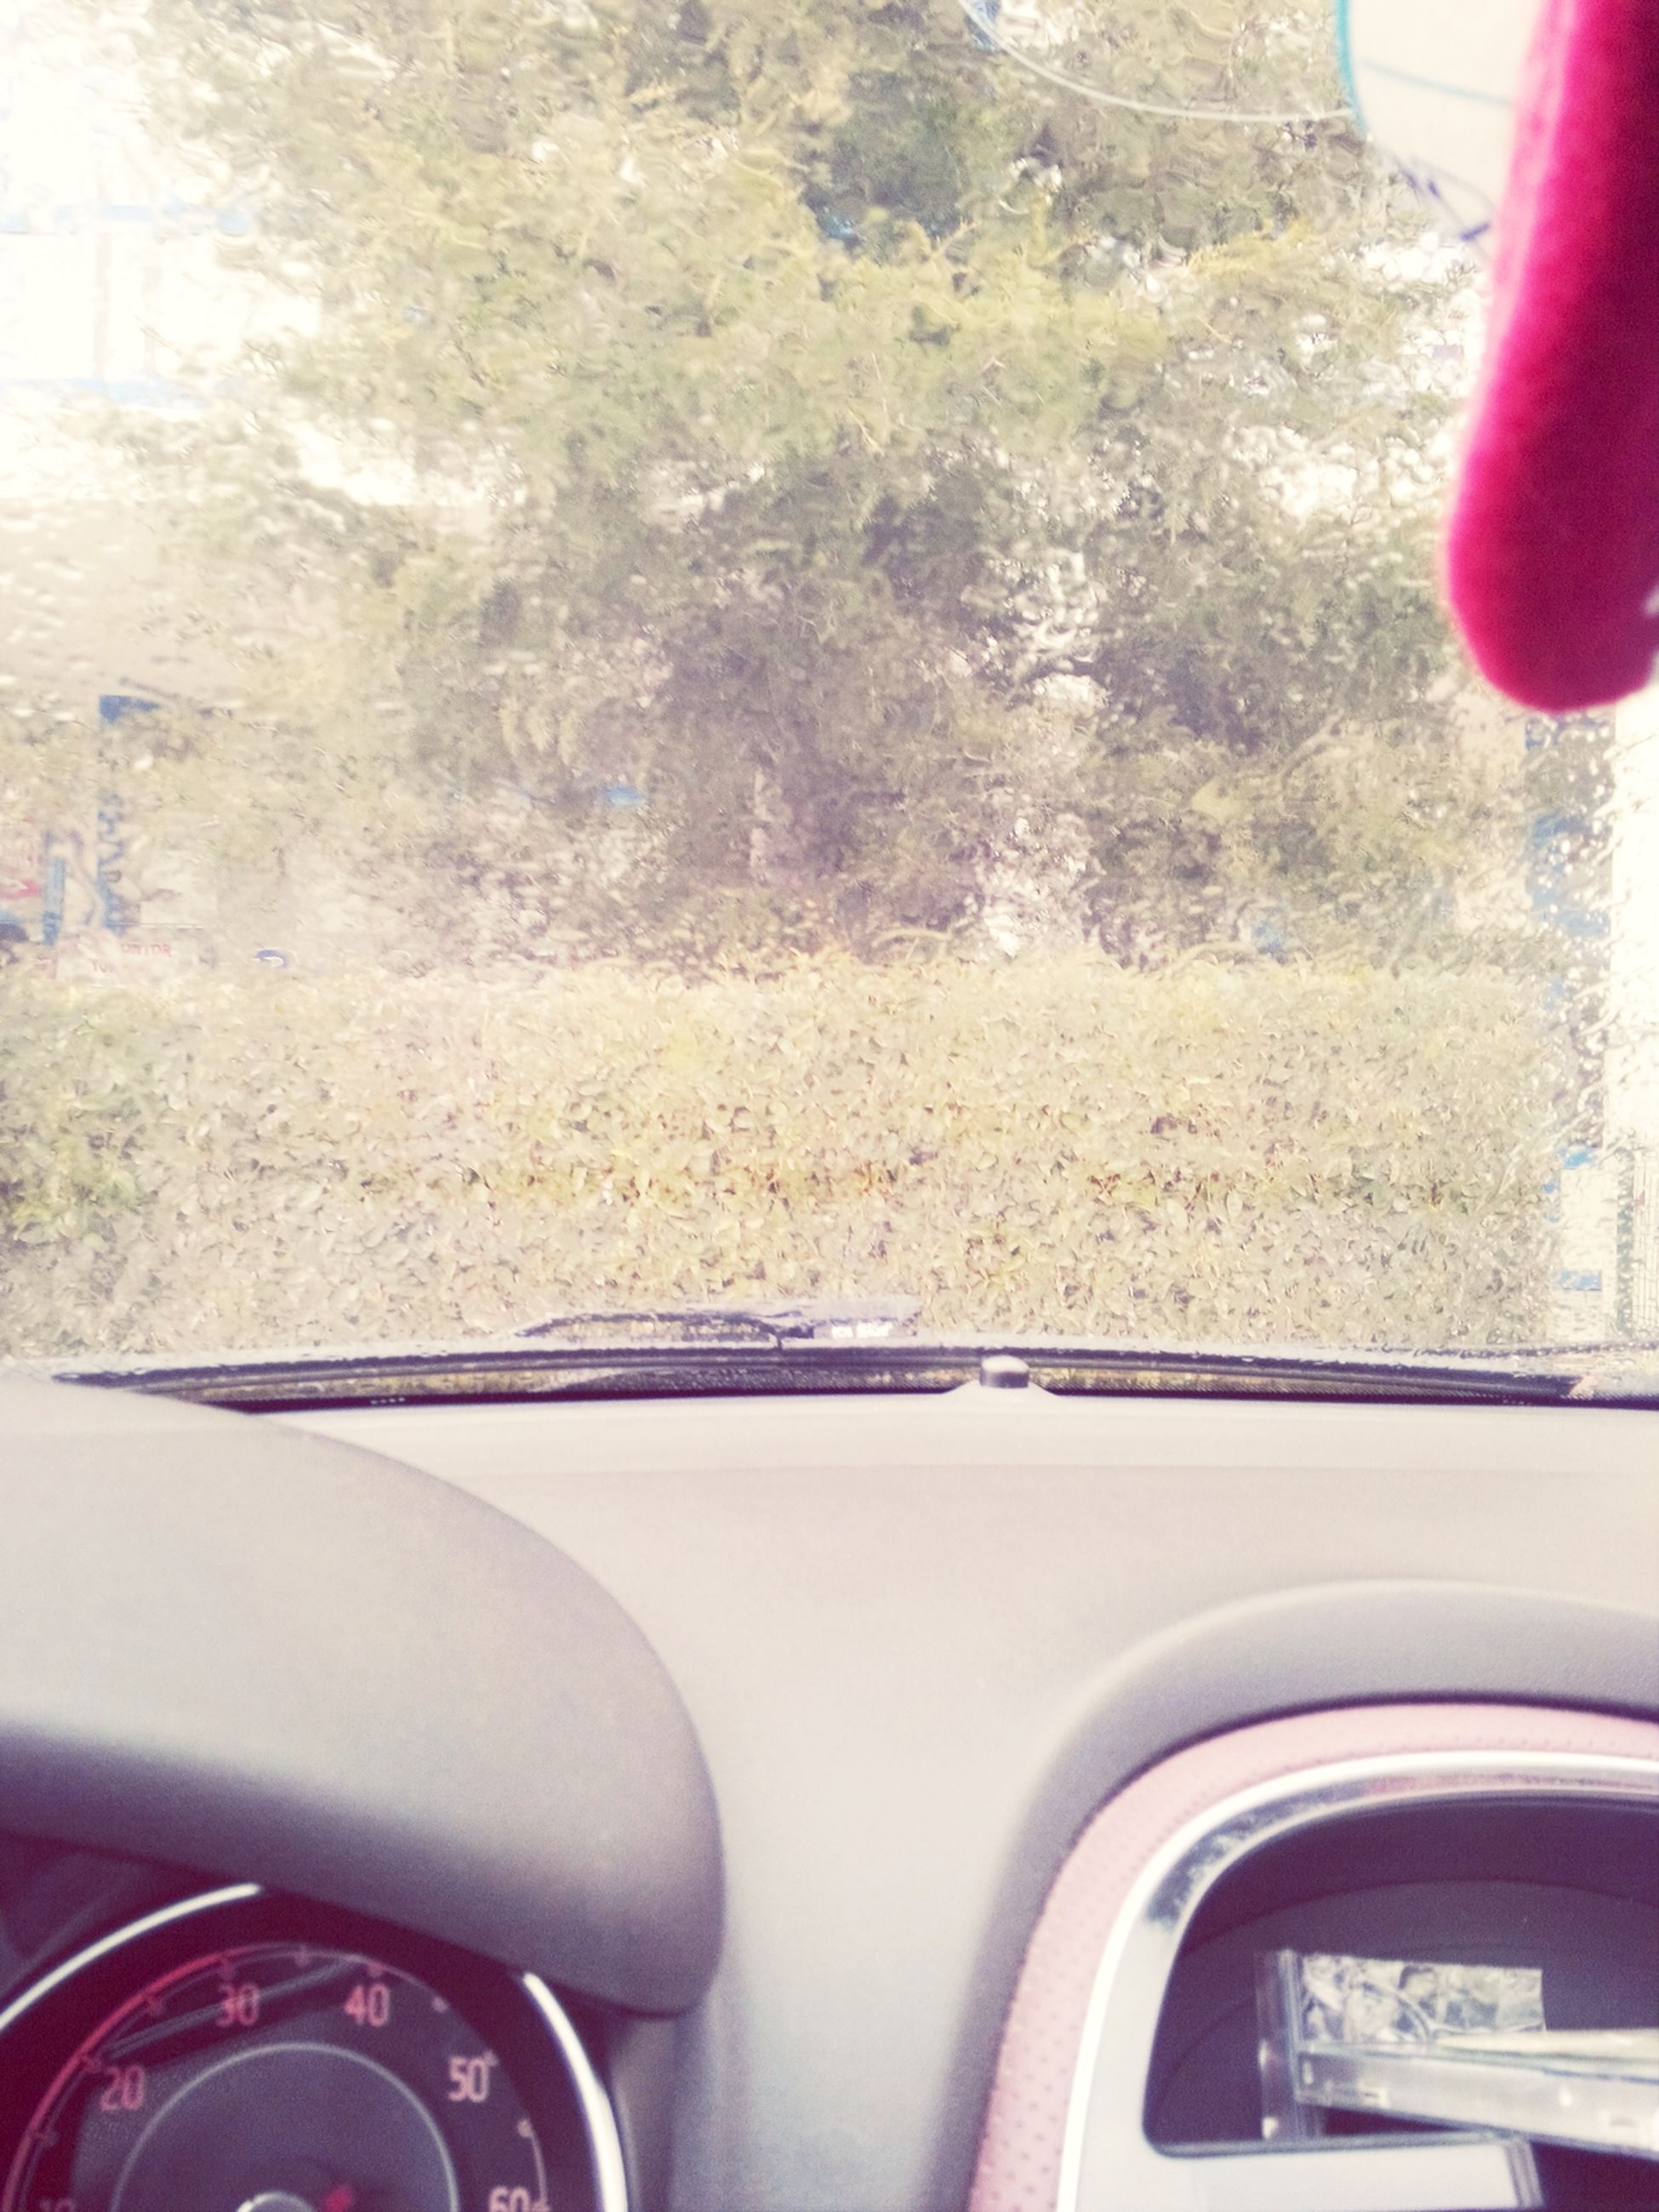 transportation, mode of transport, car, land vehicle, vehicle interior, part of, car interior, windshield, road, cropped, glass - material, transparent, window, close-up, street, travel, no people, day, red, indoors